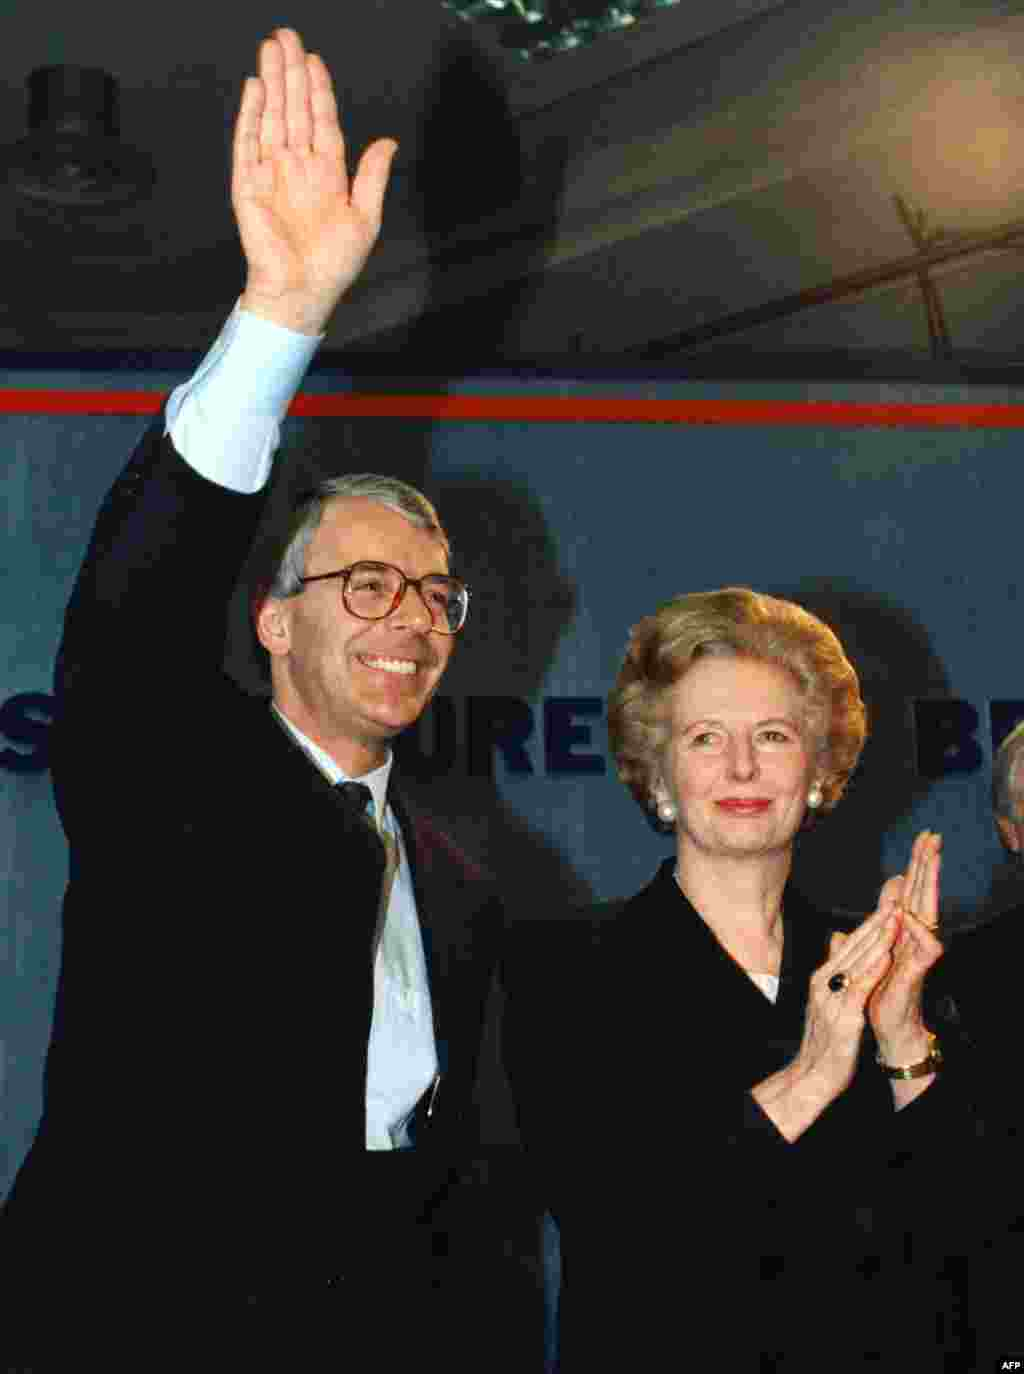 Margaret Thatcher applauds as her successor, John Major, waves in London in March 1992.